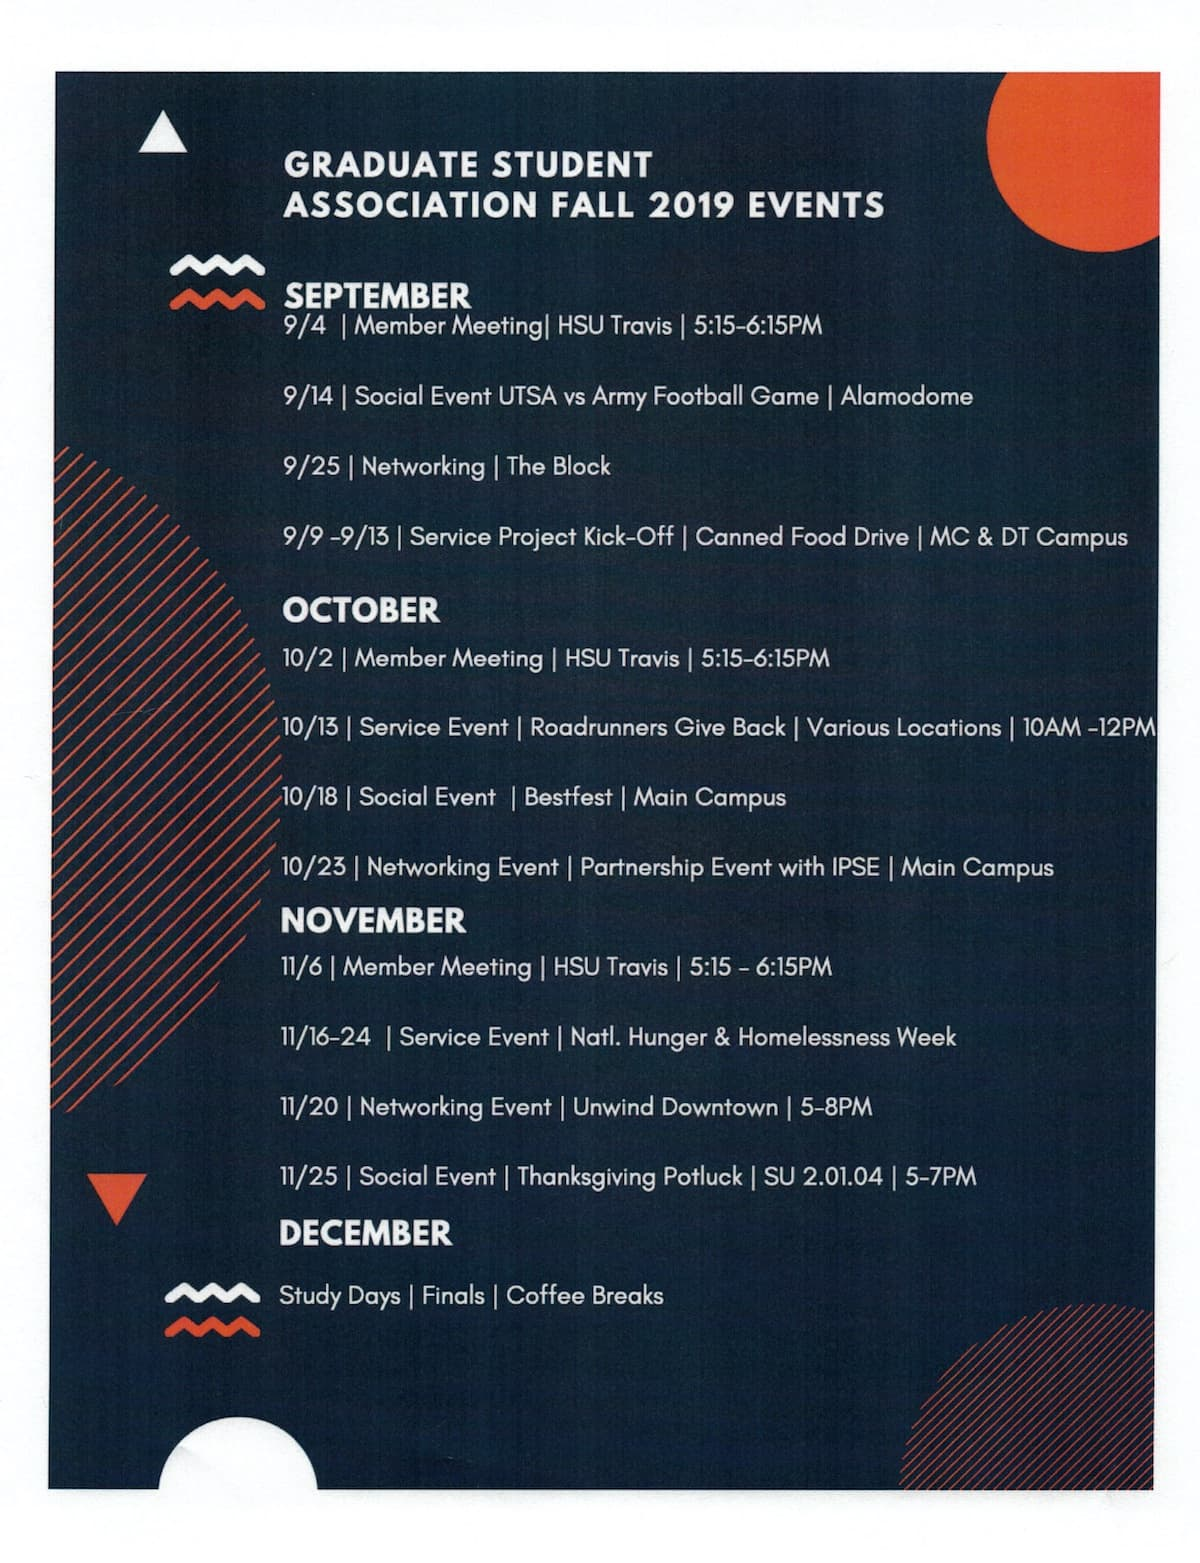 Graduate Student Association Fall 2019 Events Schedule